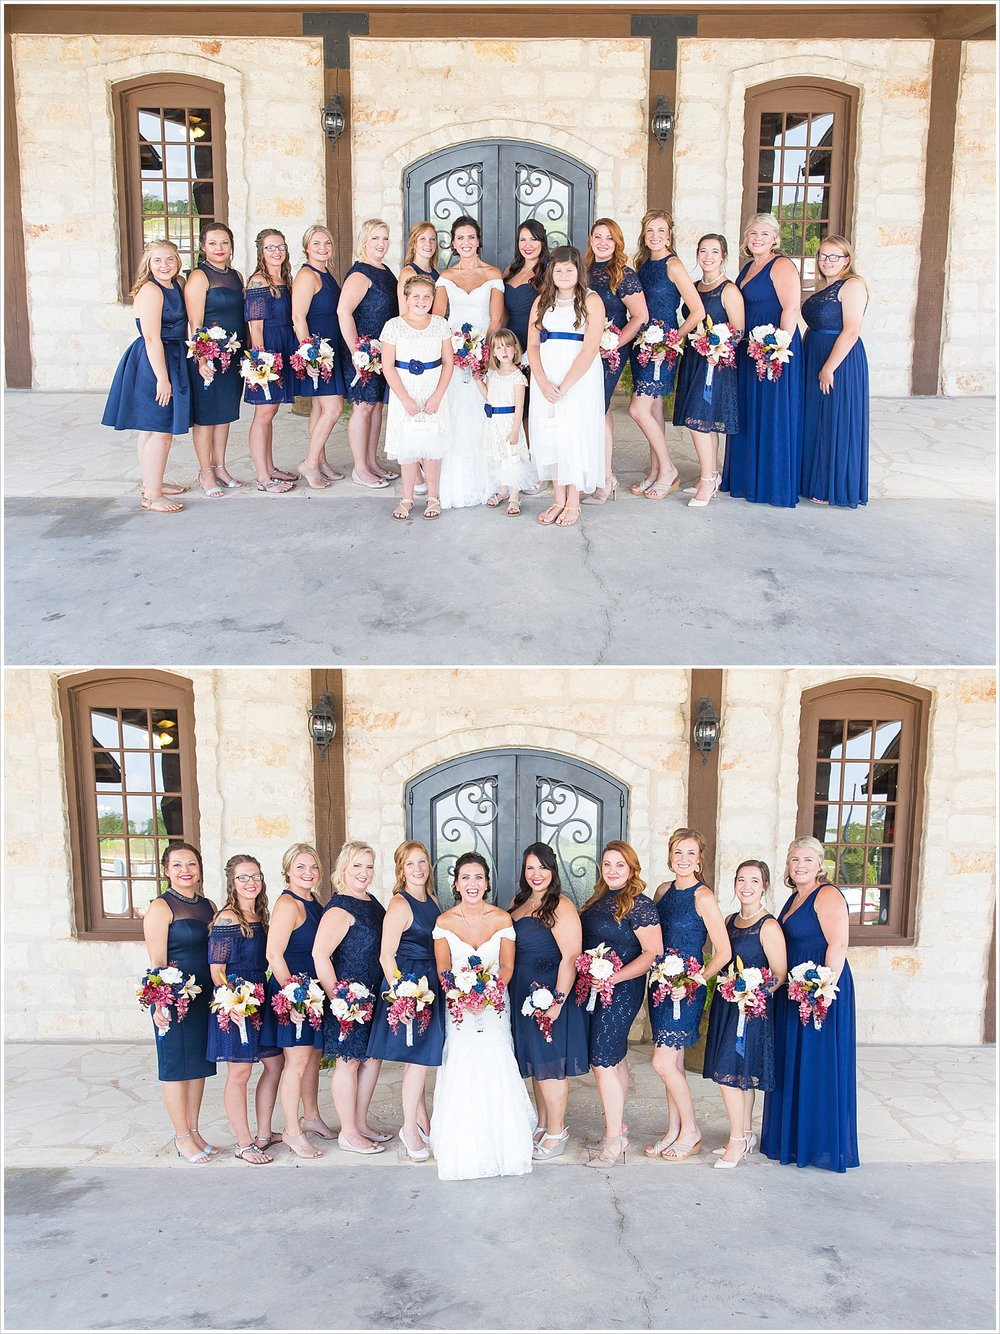 Bridal party, summer blush and navy wedding at Stone Hall at The Springs in McKinney, Texas, Jason & Melaina Photography, www.jasonandmelaina.com